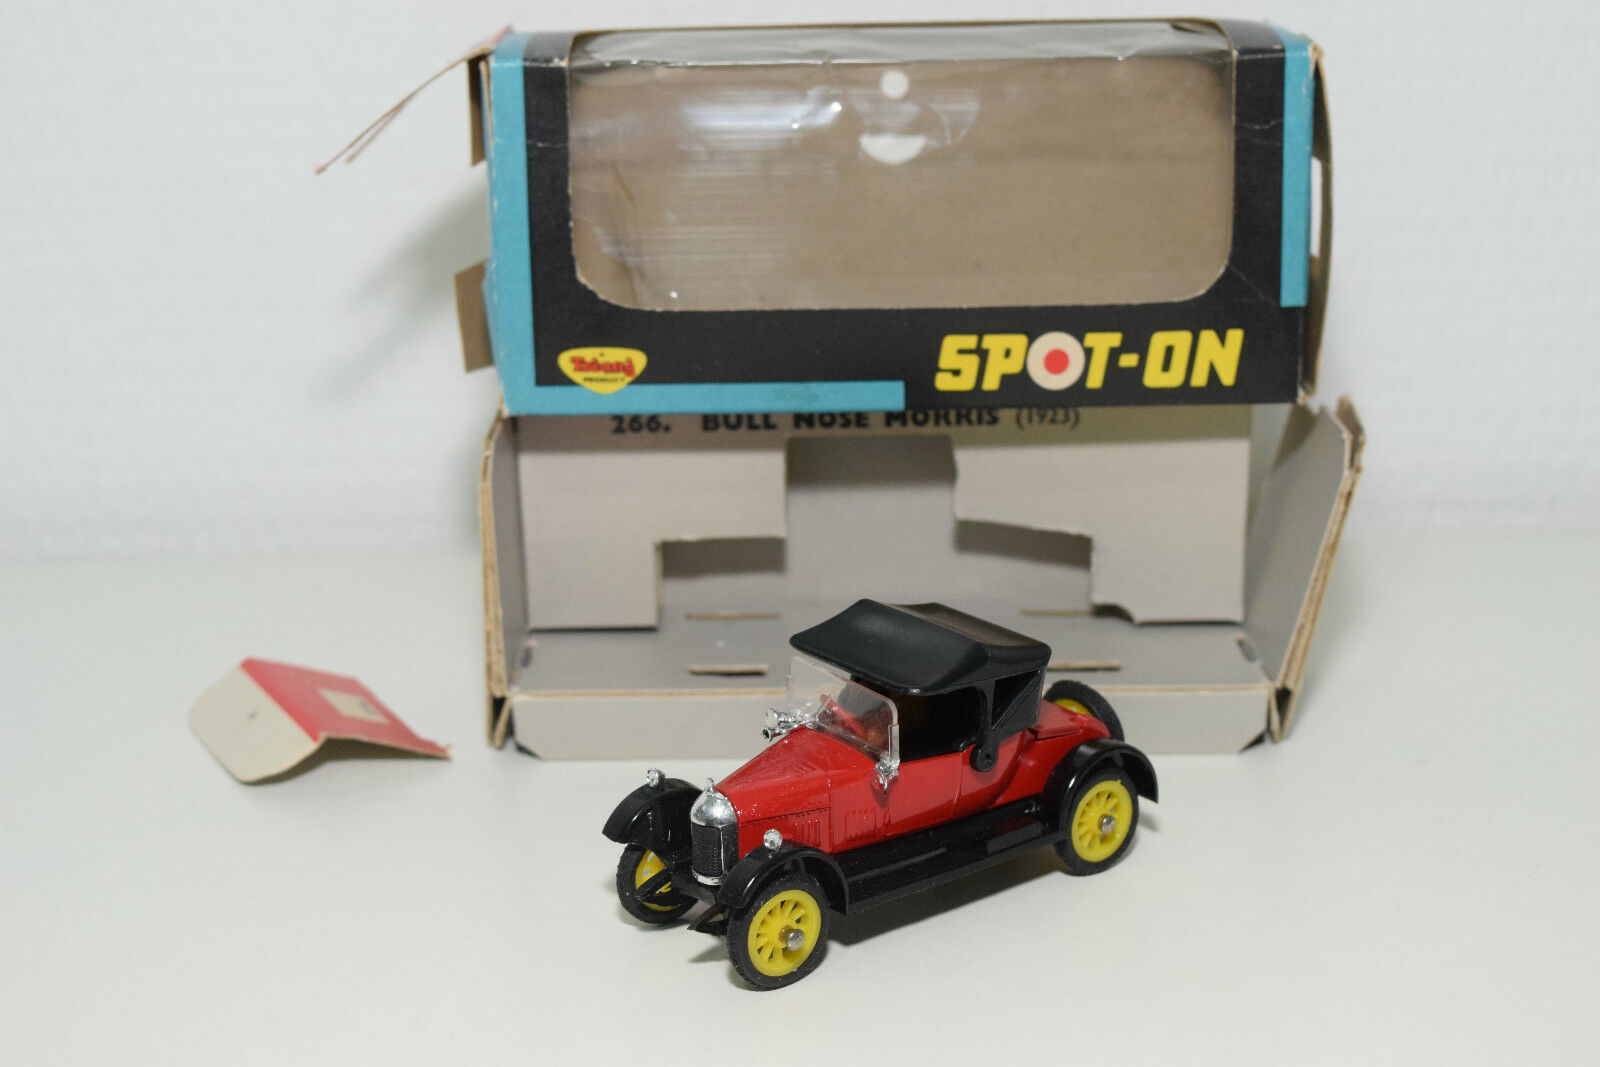 SPOTON SPOT-ON SPOT ON 266 266 266 BULL NOSE MORRIS 1923 RED MINT BOXED 3afc1b